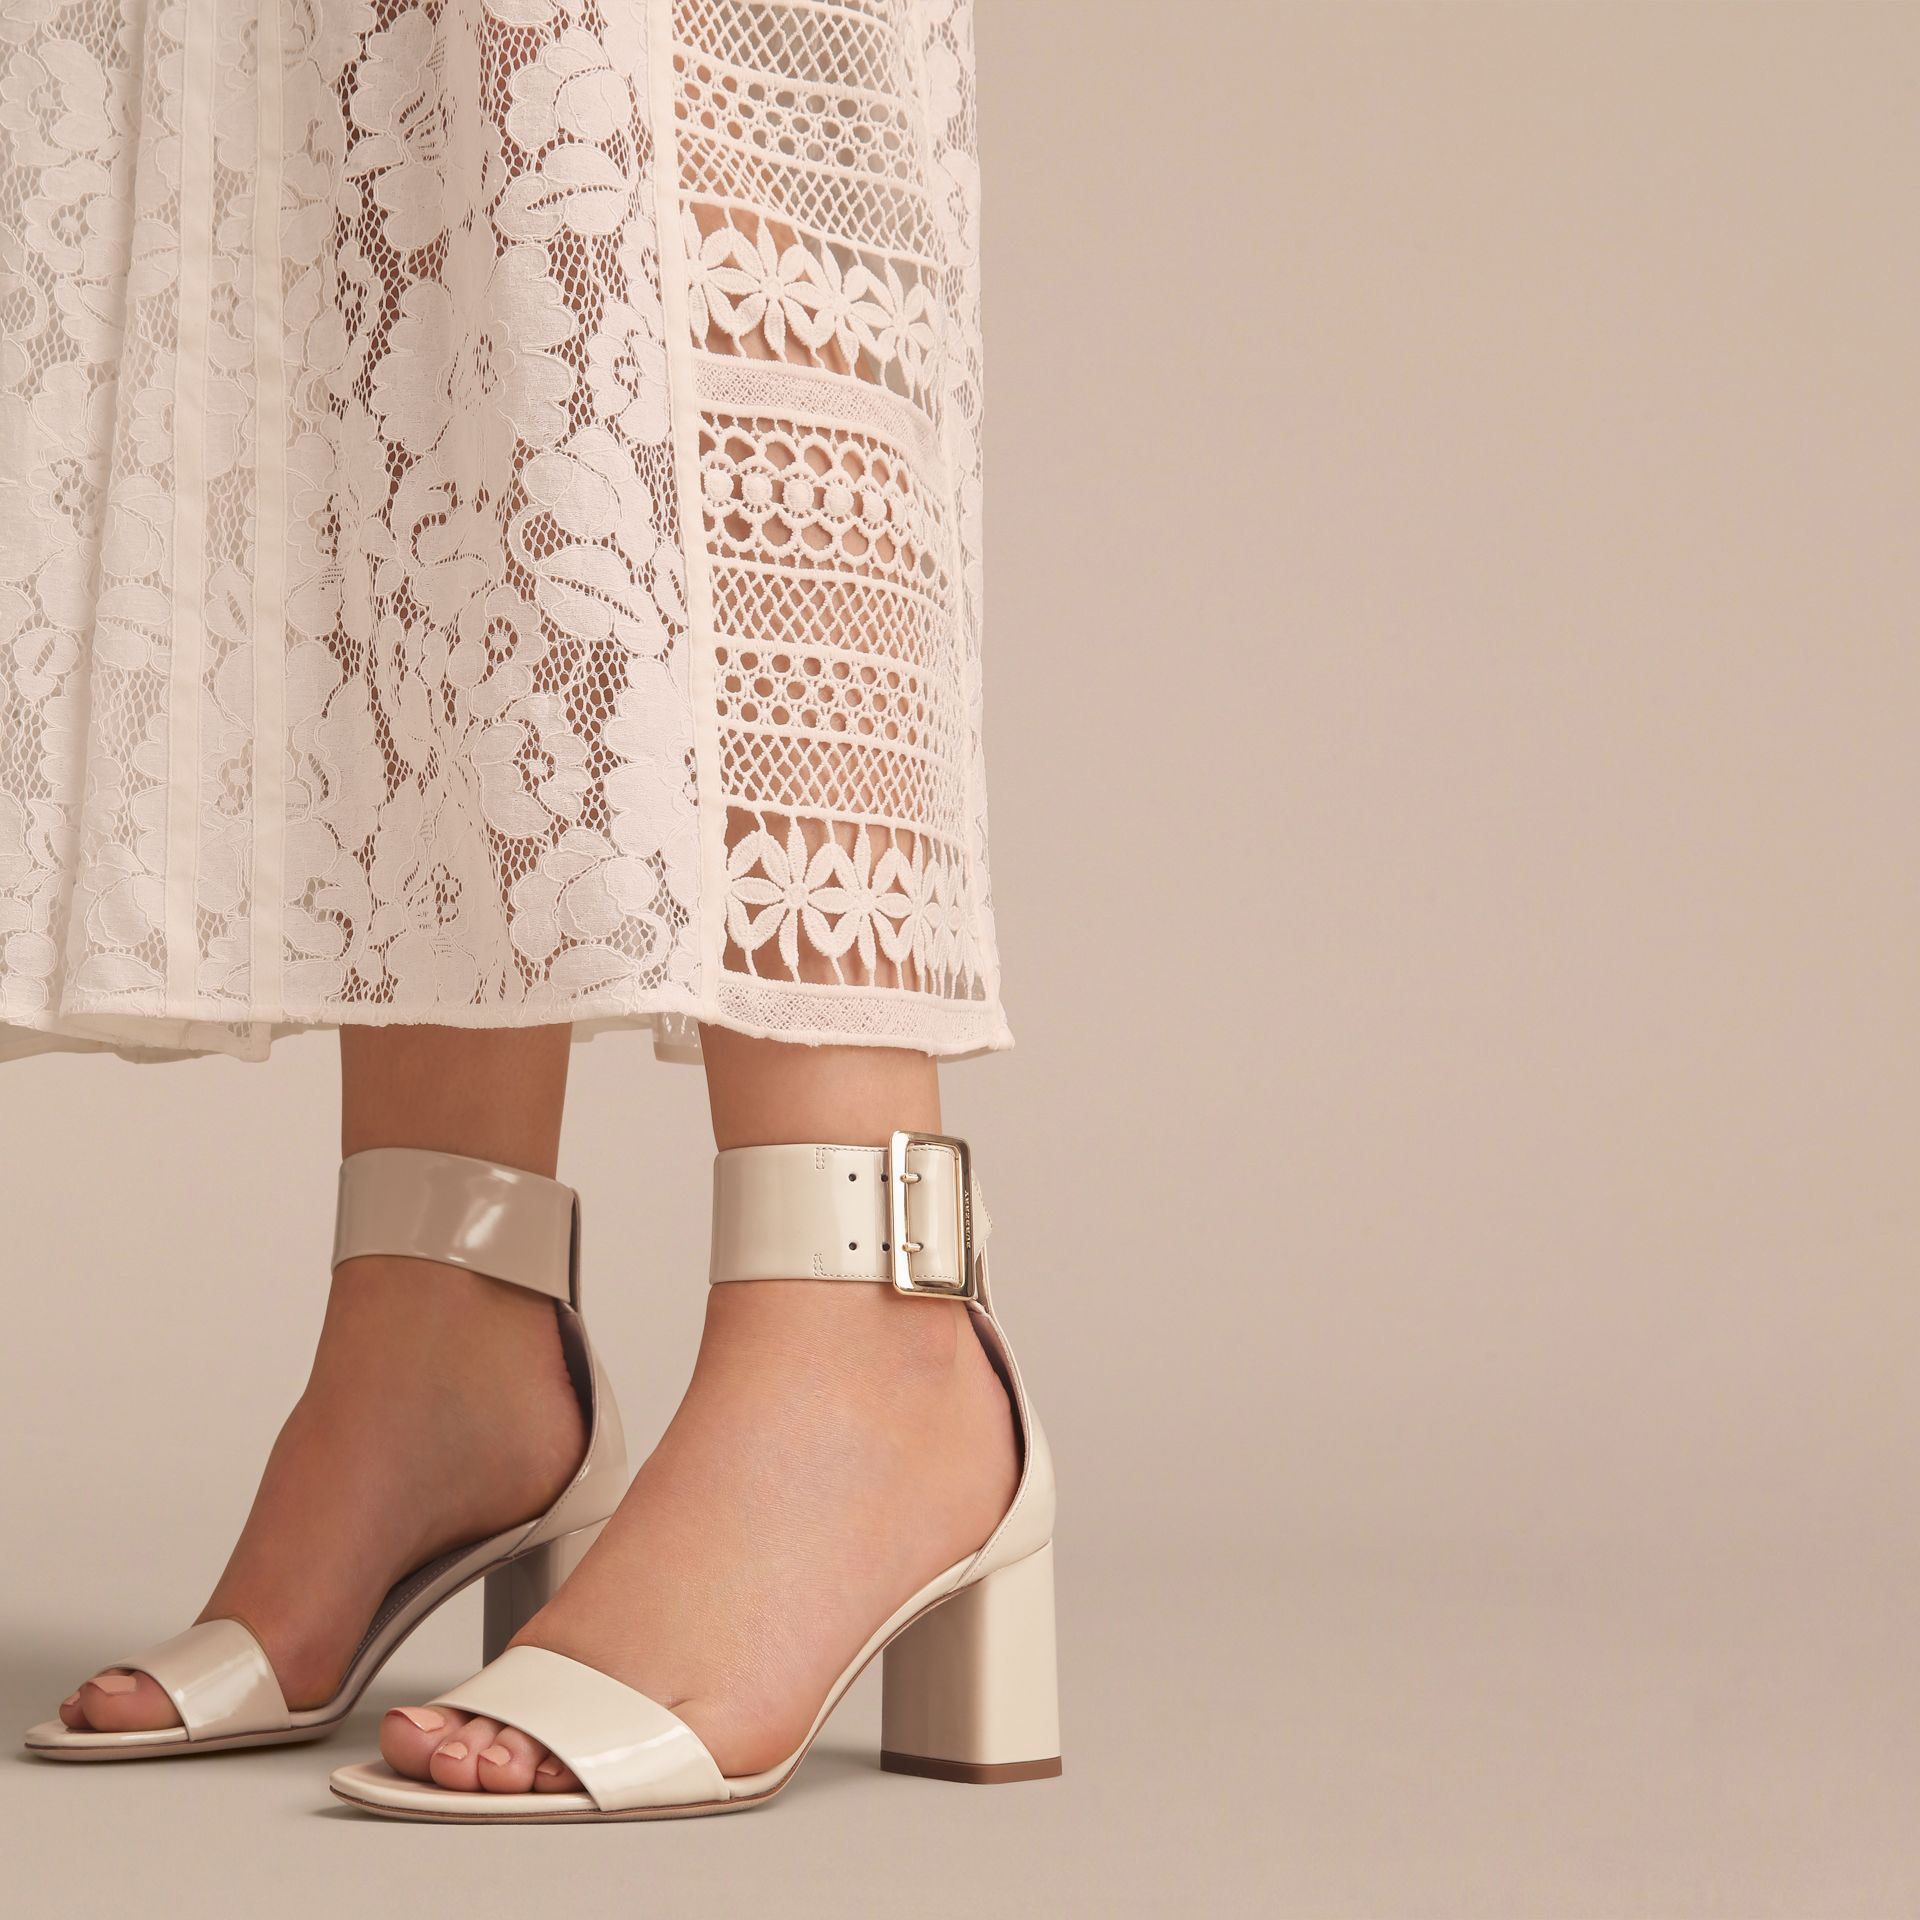 Buckle Detail Patent Leather Sandals in Pale Taupe - Women | Burberry Canada - gallery image 3